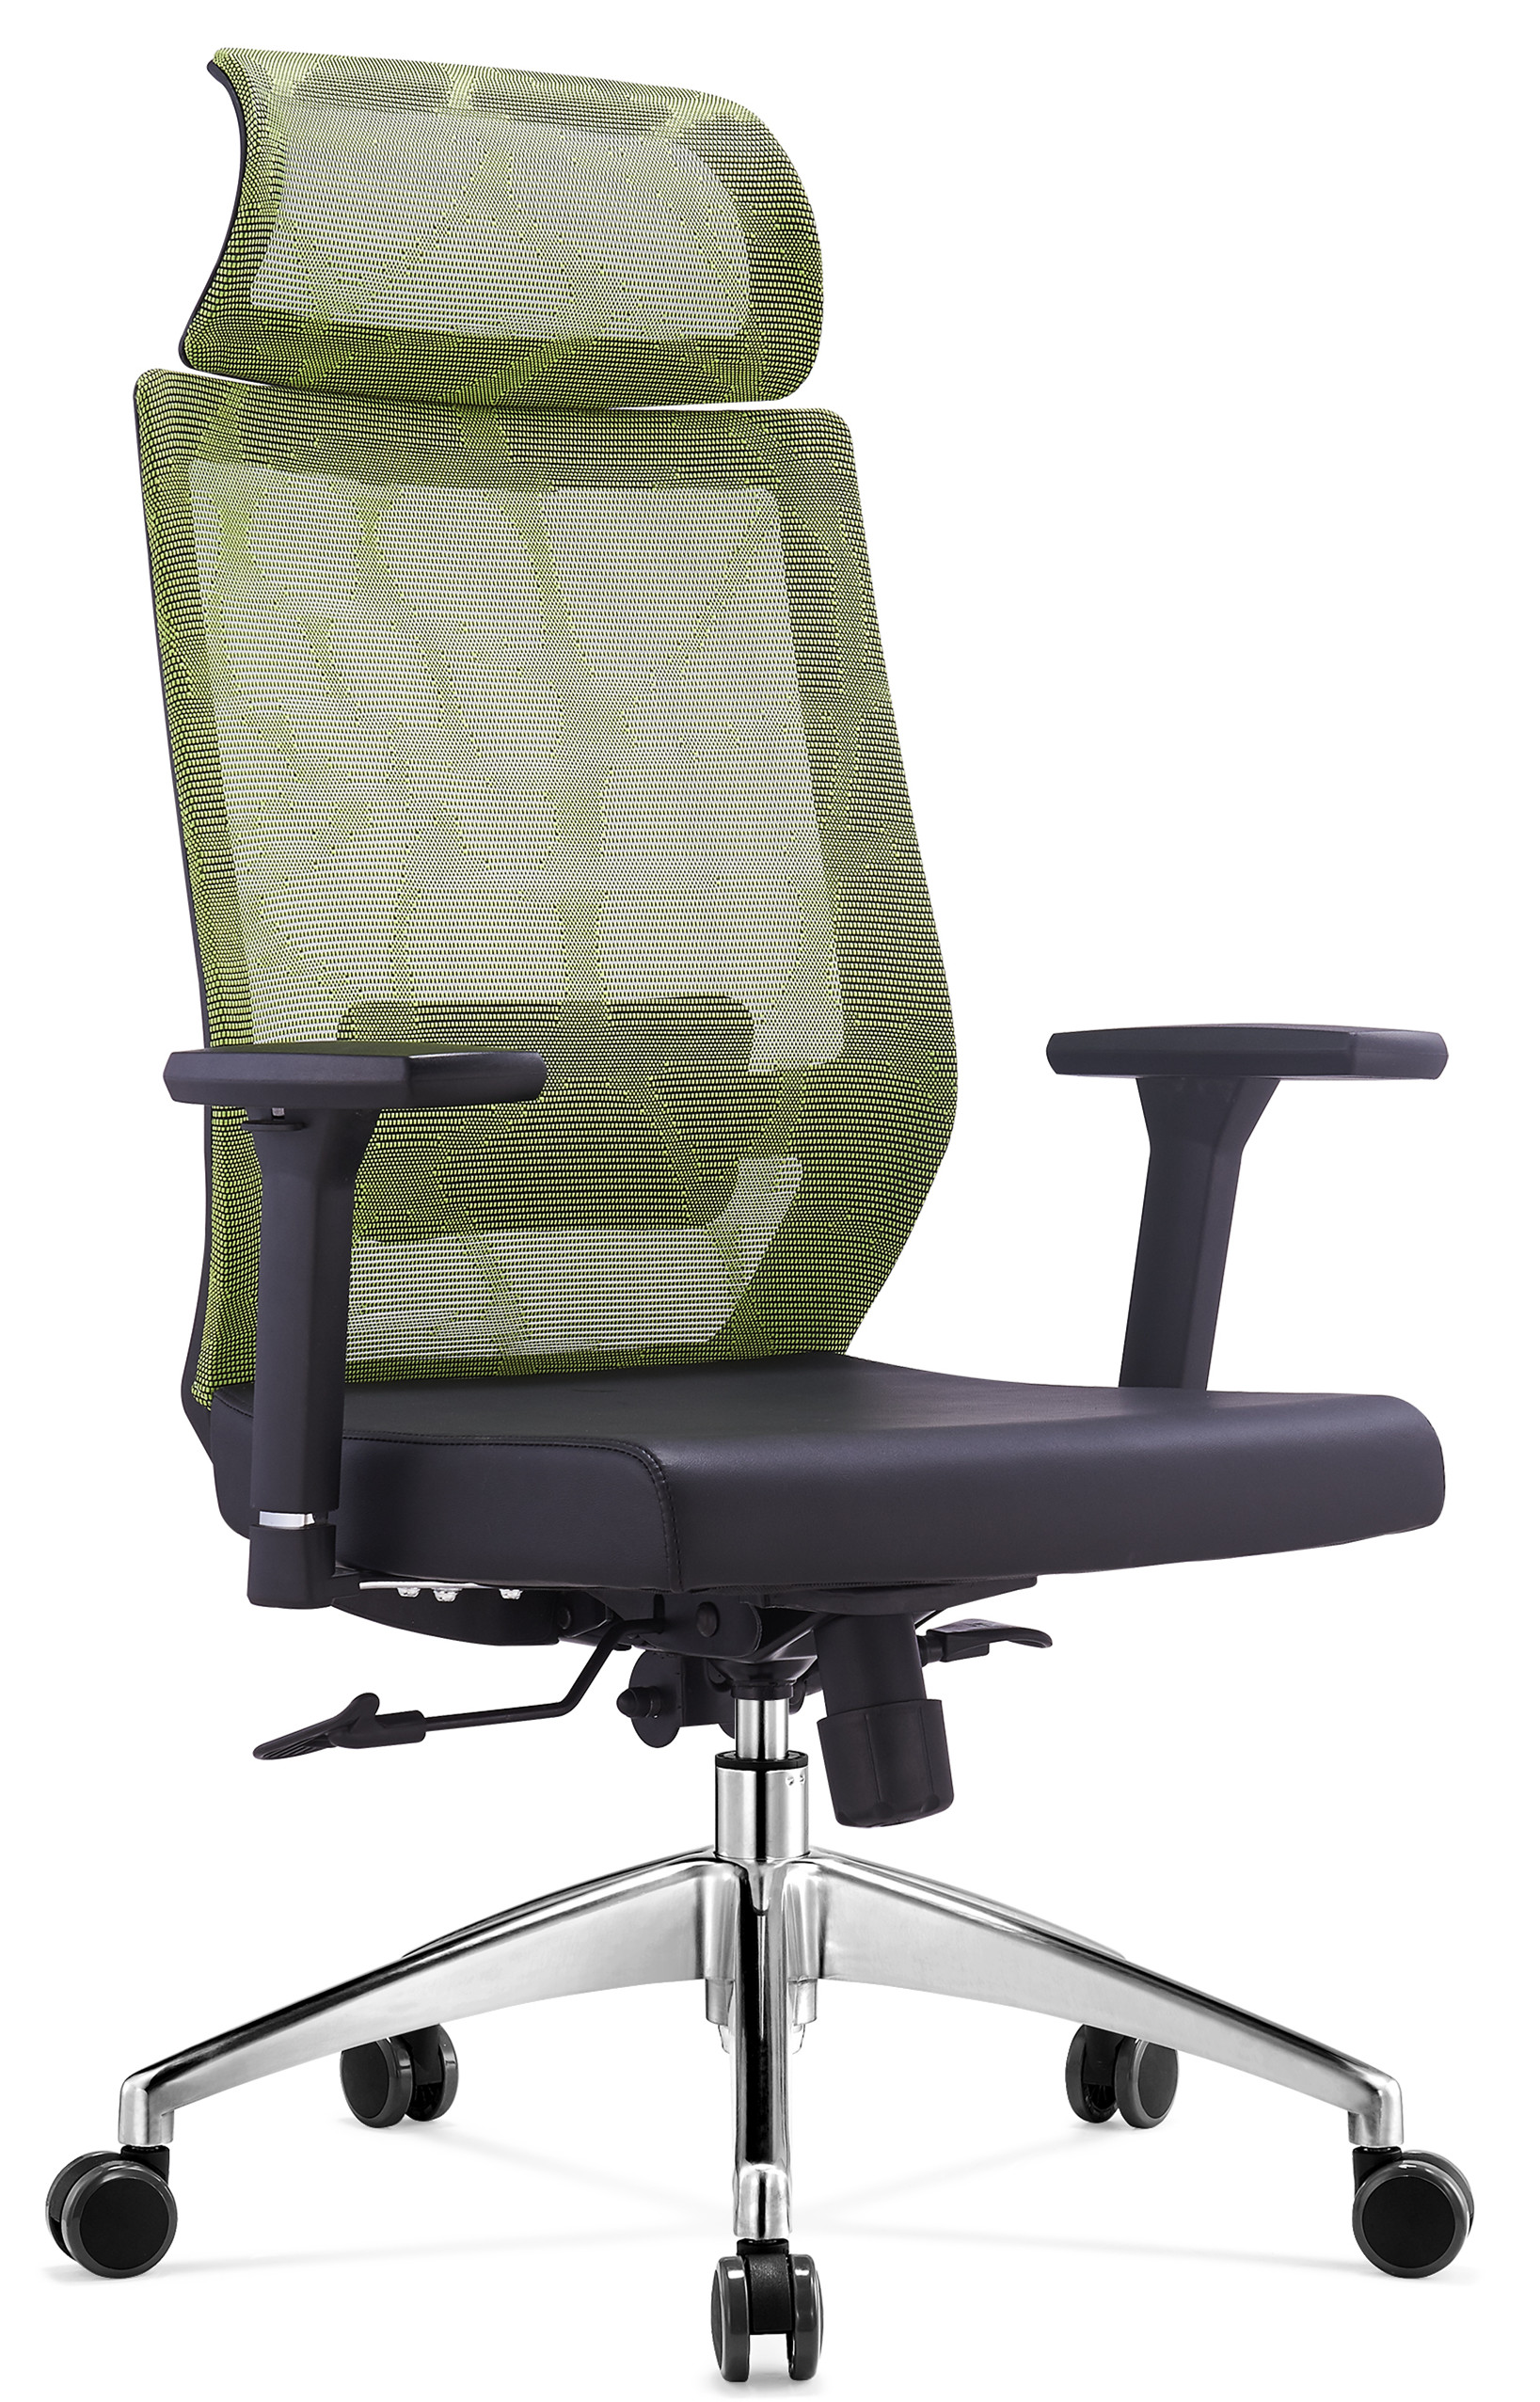 Peachy Best Sell High Back Mesh Modern Office Chair Wih 3D Arm View Best Sell Black Mesh Modern Office Chair Mingjuexuan Product Details From Foshan Squirreltailoven Fun Painted Chair Ideas Images Squirreltailovenorg